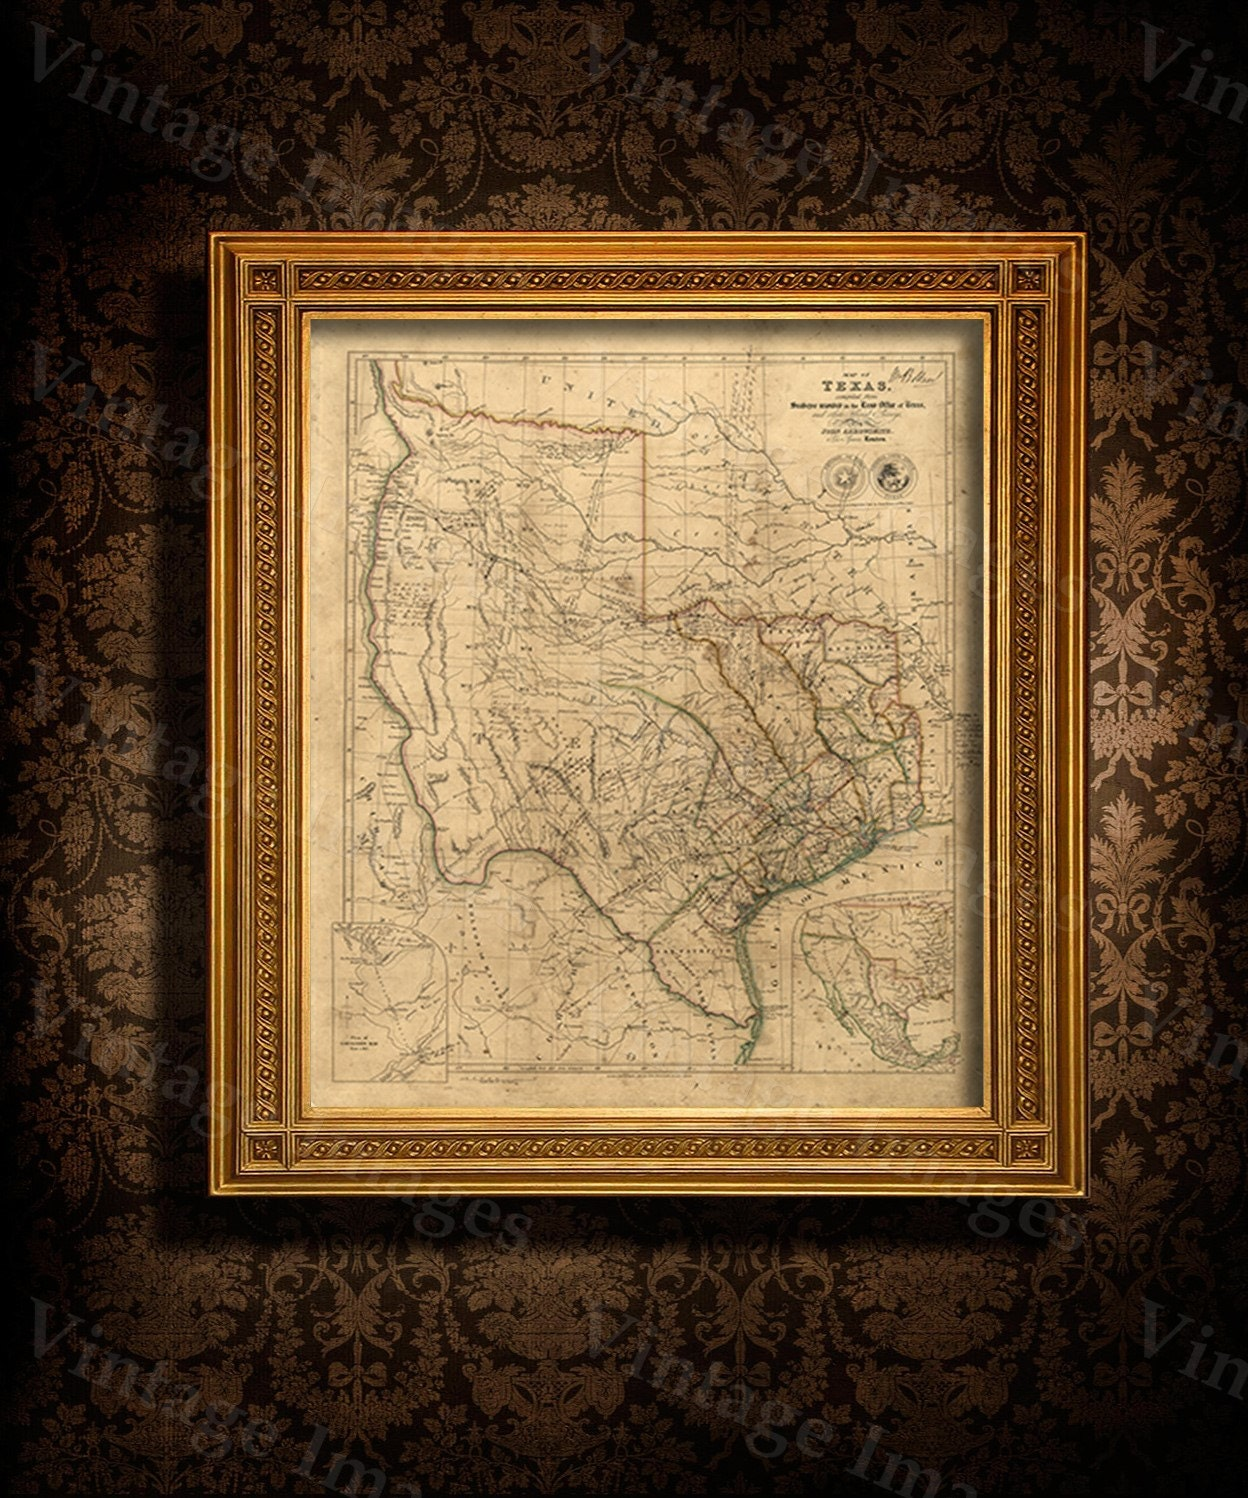 Old Texas Wall Map Historical Texas Map Antique Decorator Style - Historical wall maps